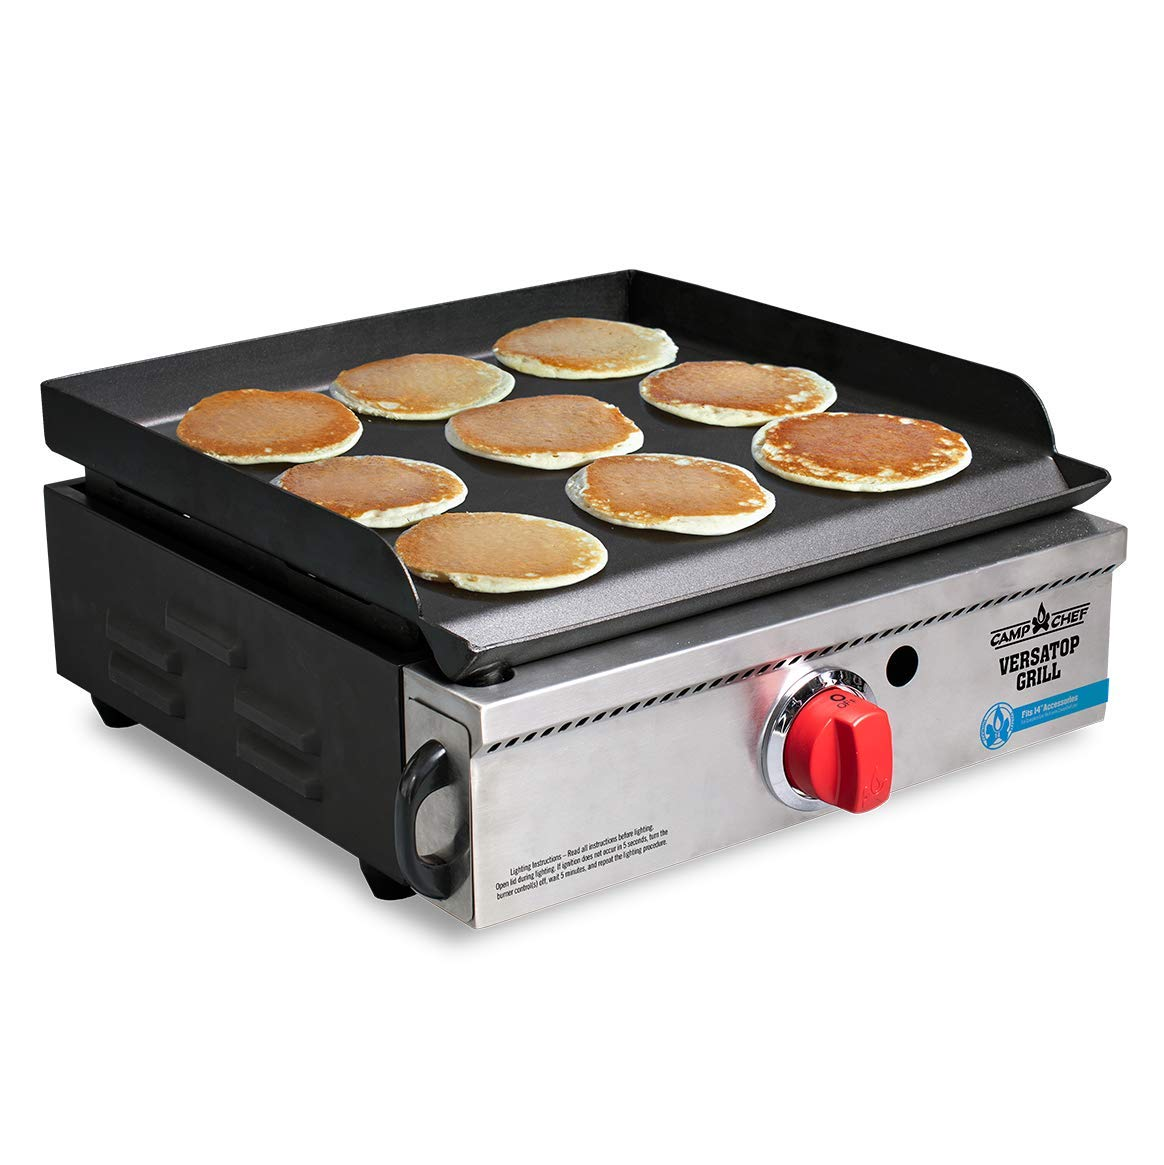 Camp Chef Versatop Portable Flat Top Grill 250 and Griddle (FTG250) - Compatible 14'' Accessories